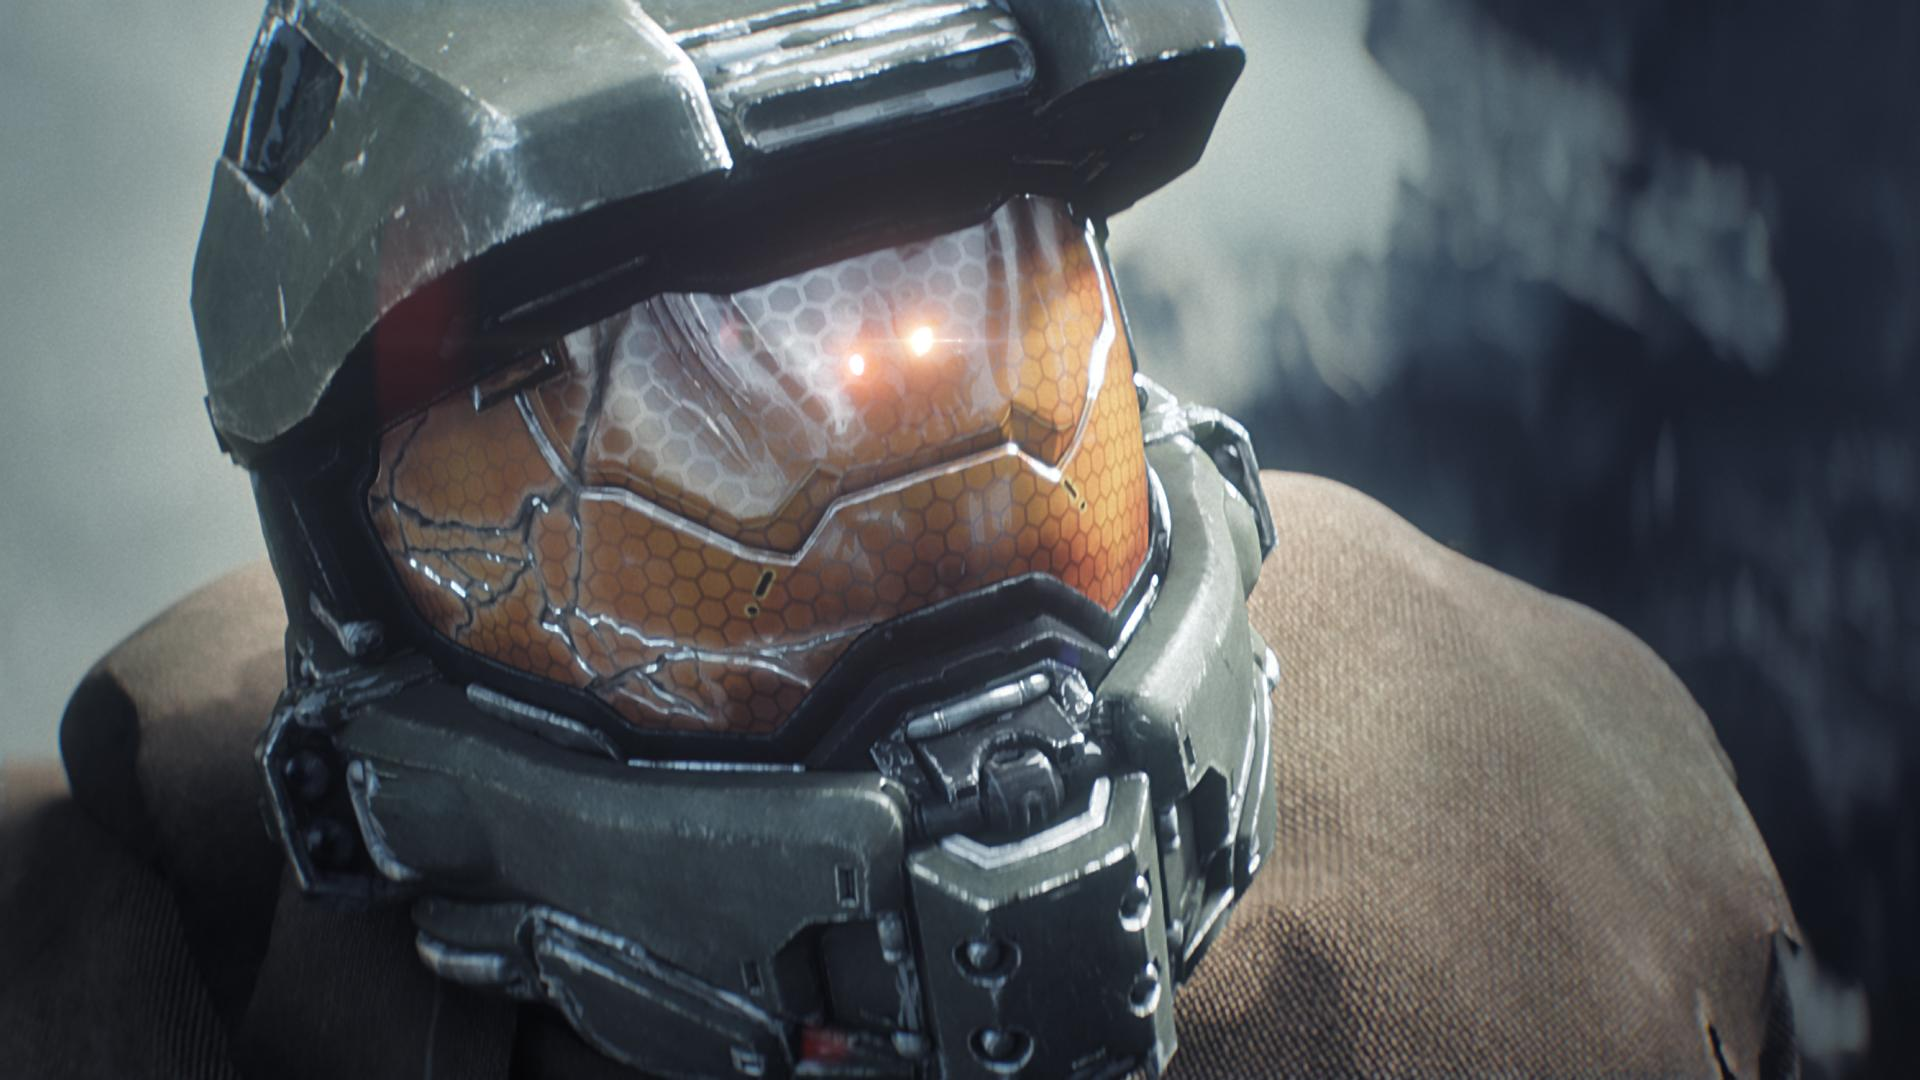 Limited Edition Halo 5 Xbox One Coming Soon, Developer Confirms